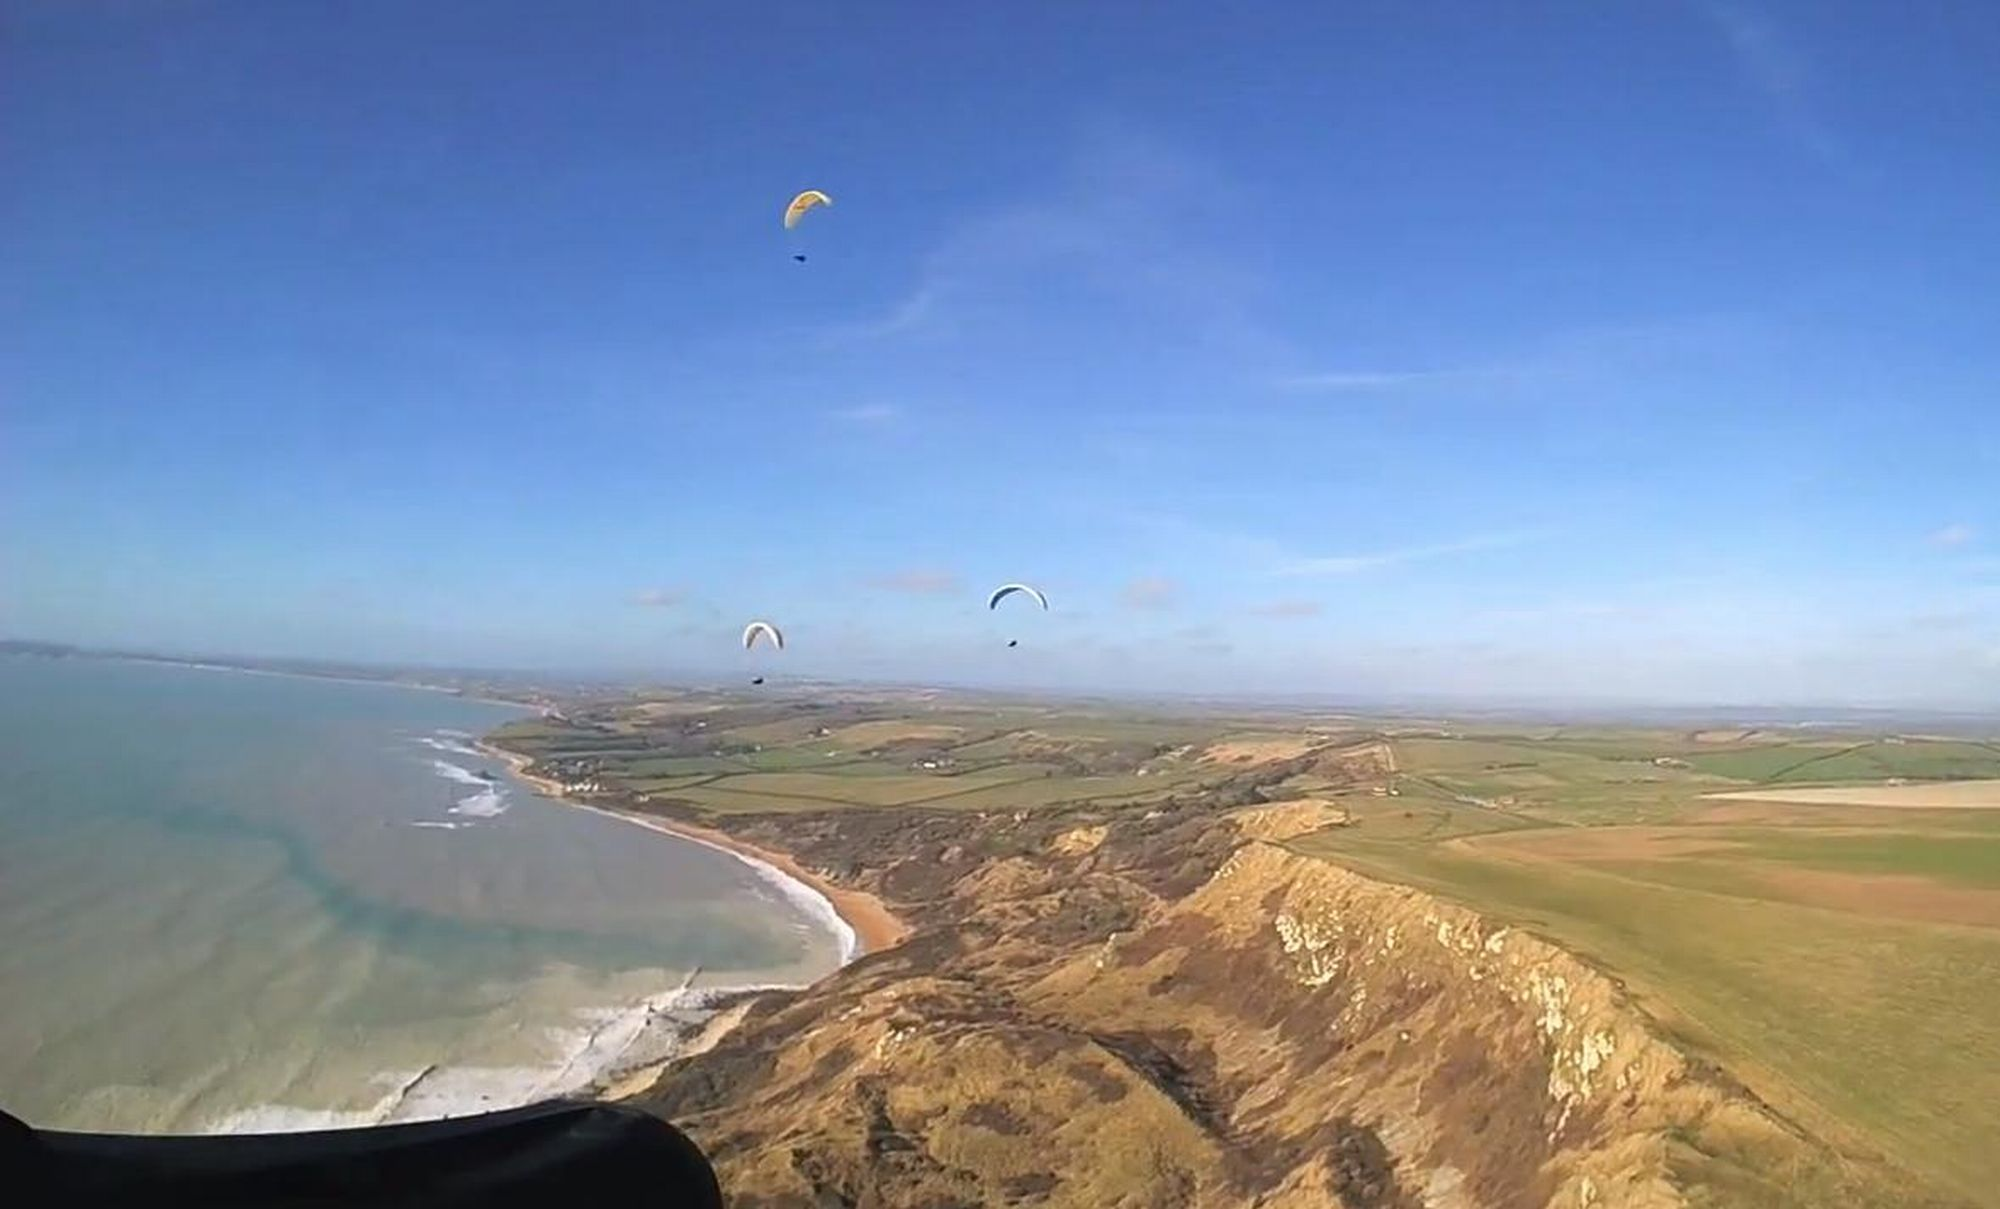 FLYING HIGH: Rare glimpse of Jurassic Coast